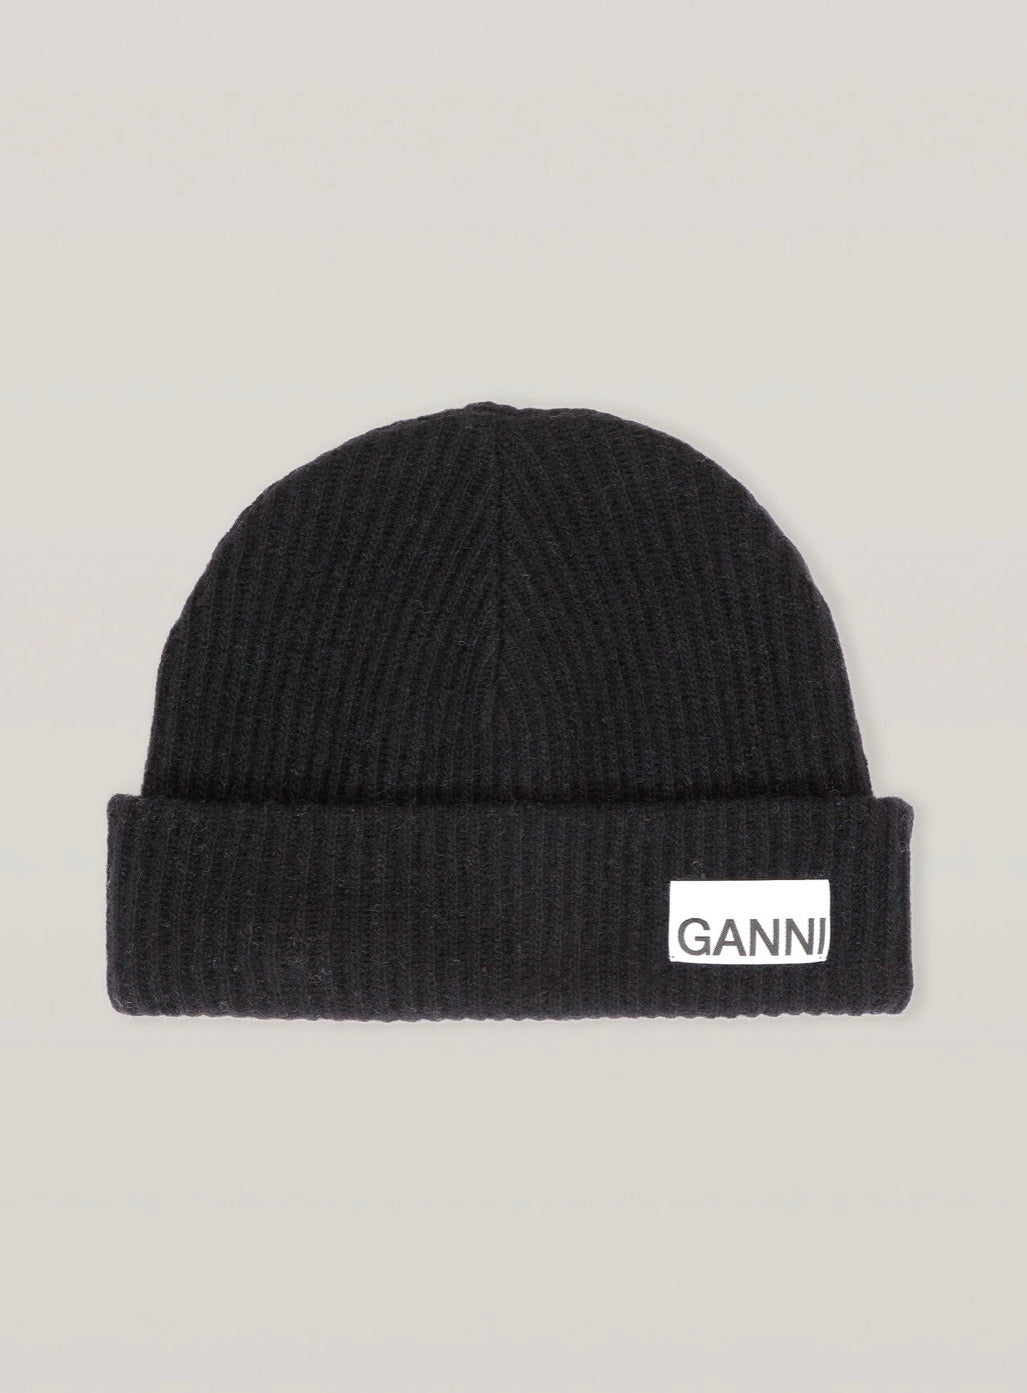 Recycled Wool Knit Hat - Black